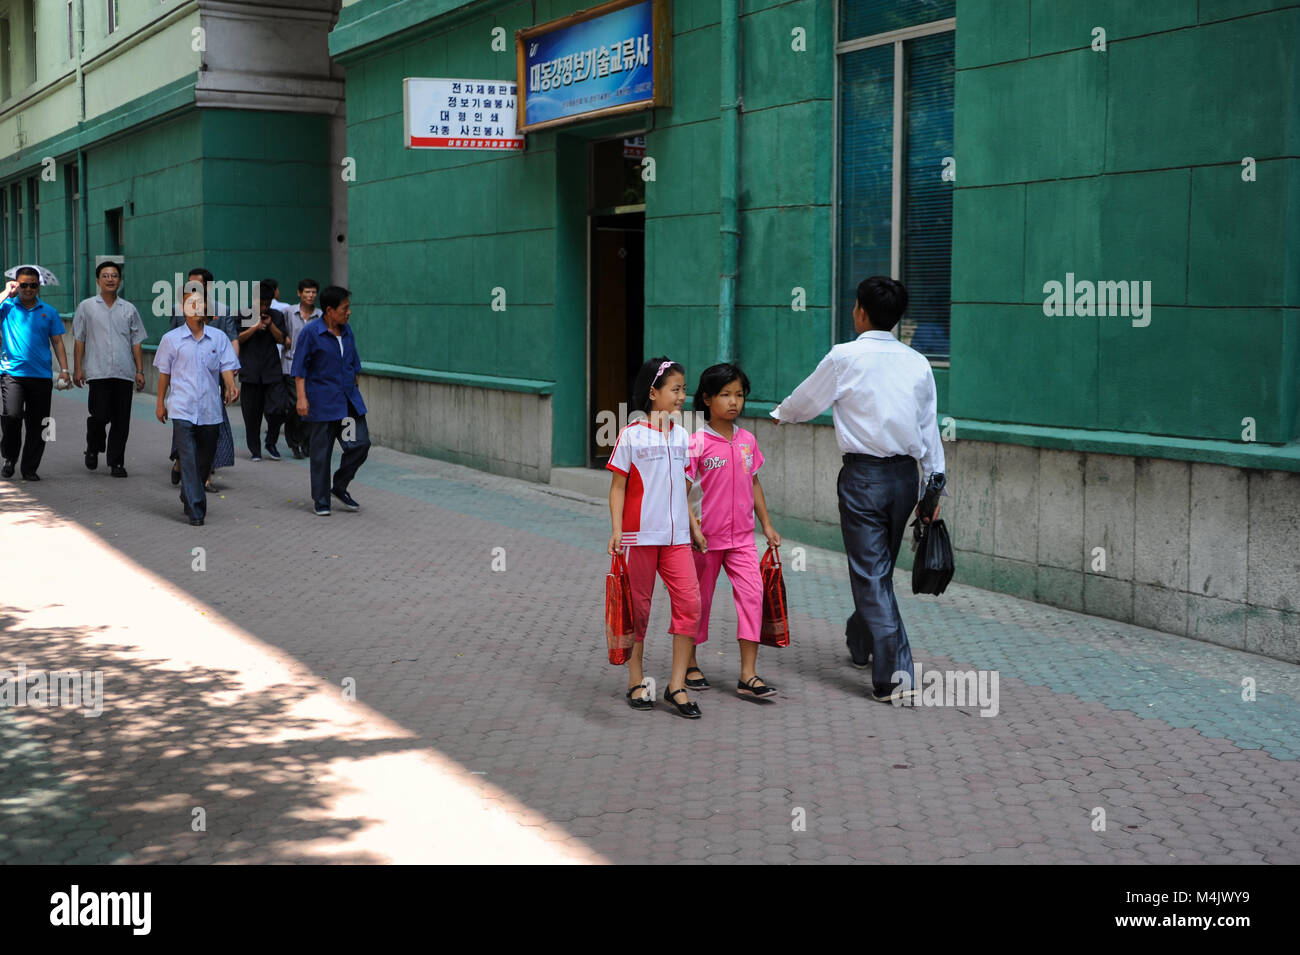 08.08.2012, Pyongyang, North Korea, Asia - Pedestrians in central Pyongyang. - Stock Image